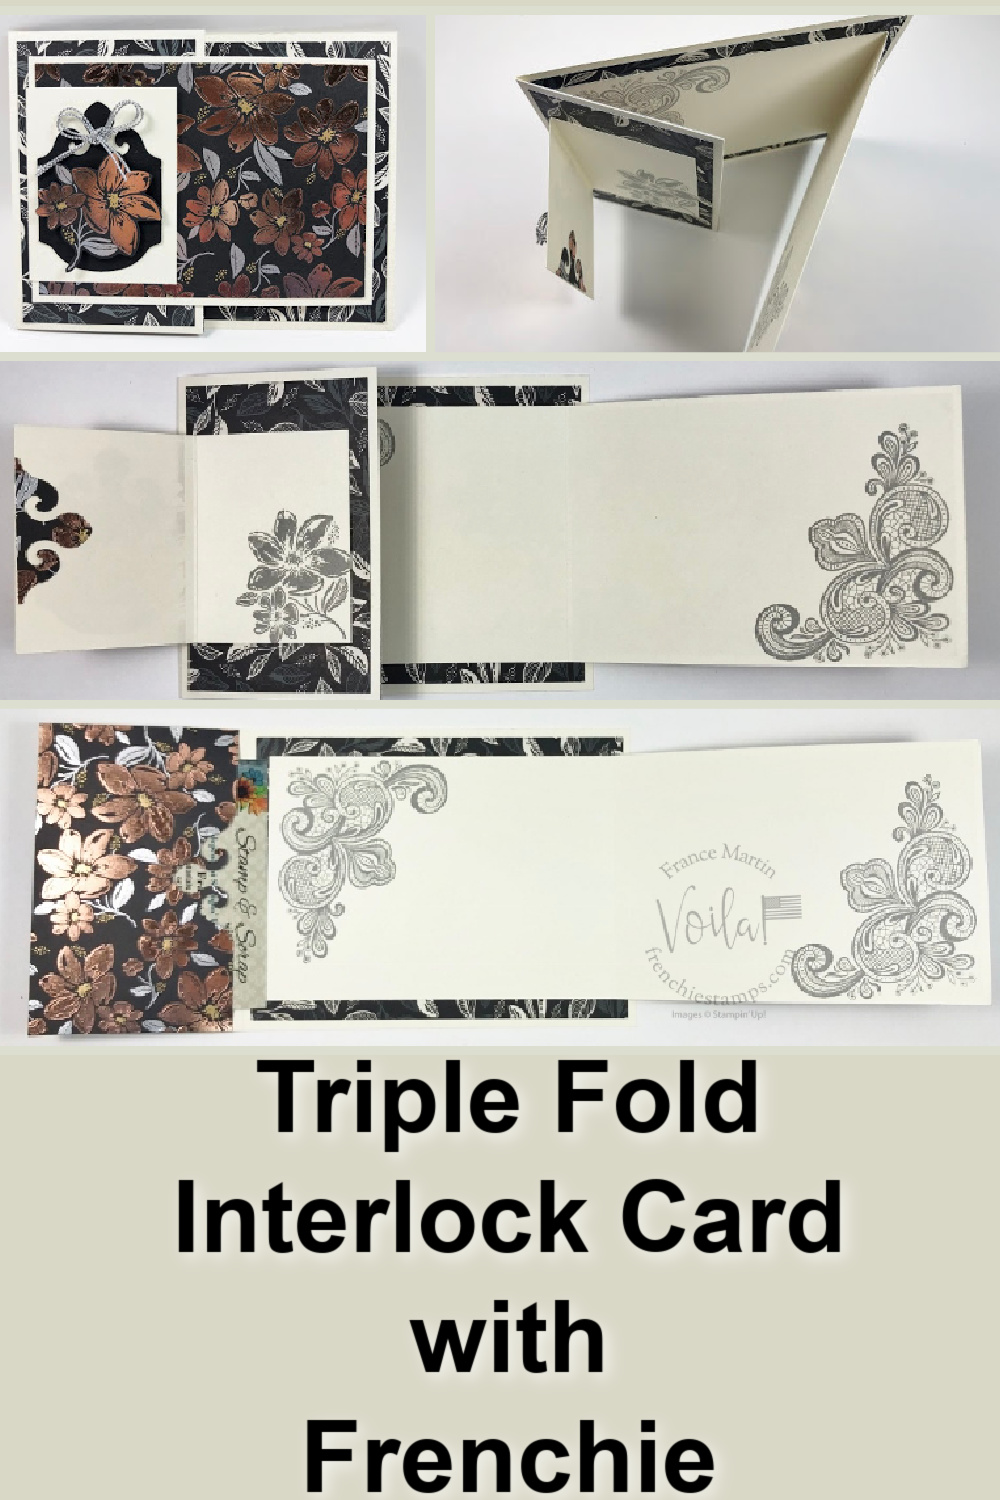 Triple Fold Interlock Card with Simply Elegant Specialty Paper.